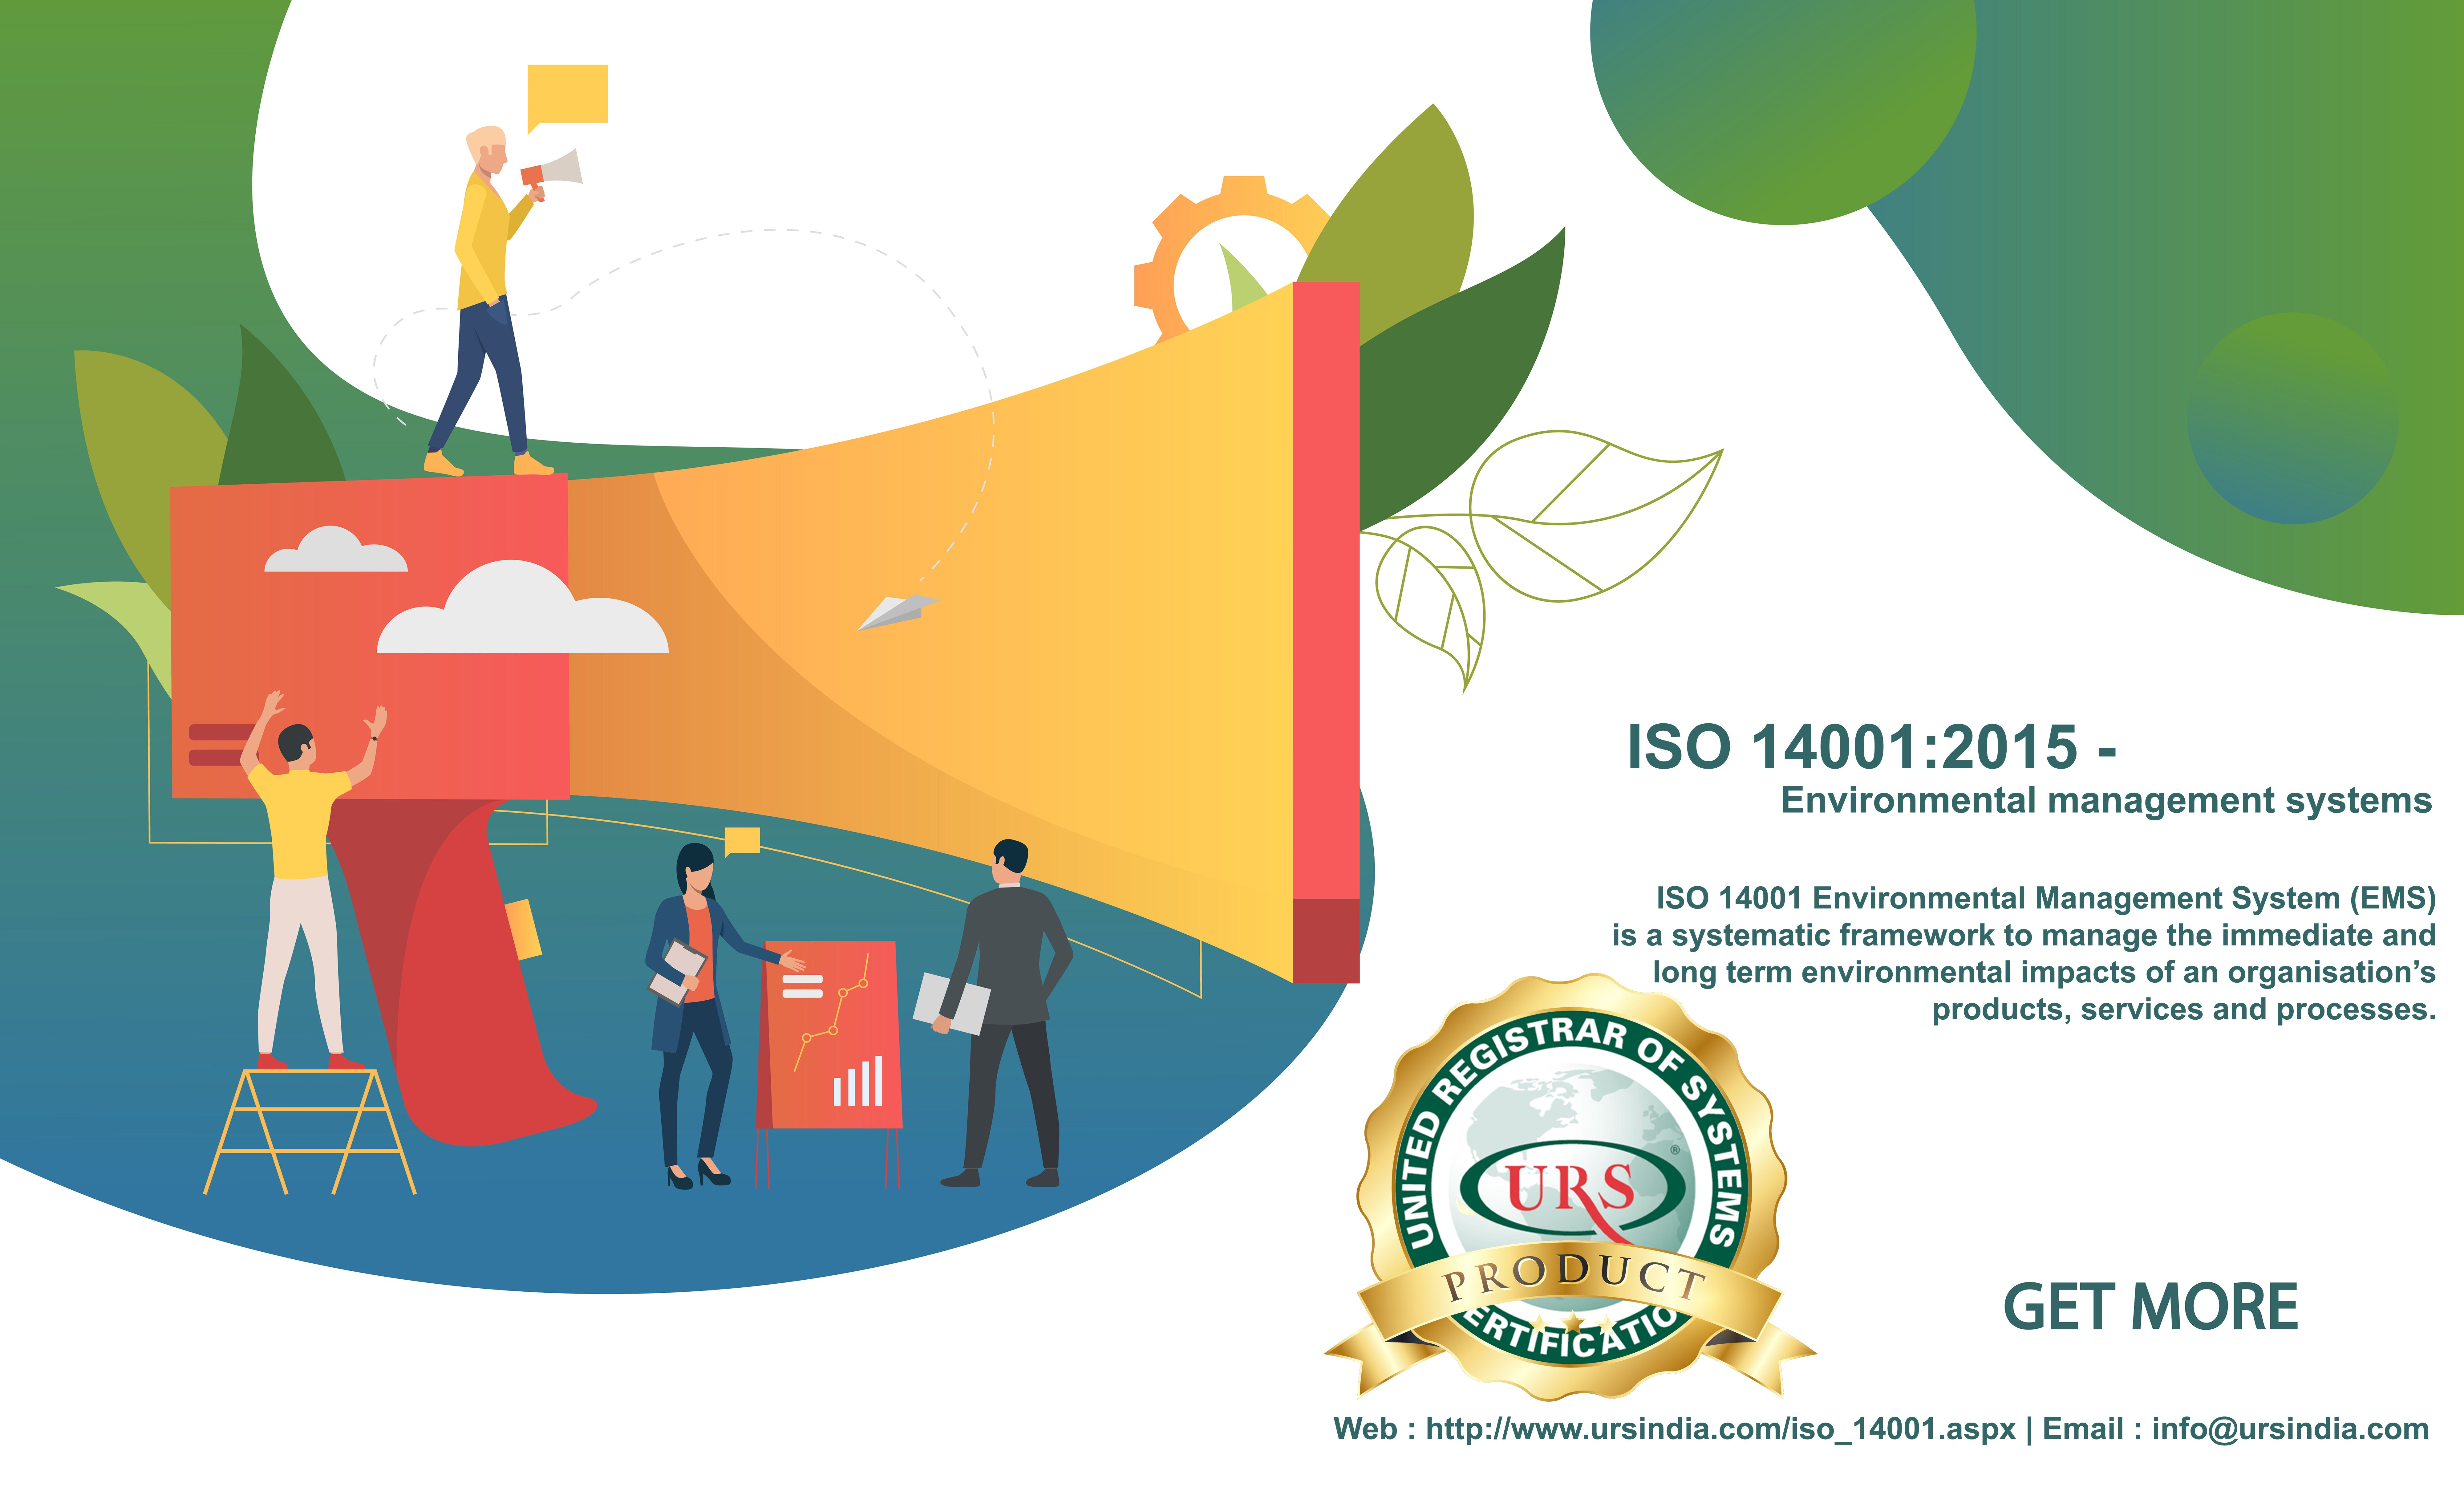 ISO 14001 family of standard is the protocol that is used